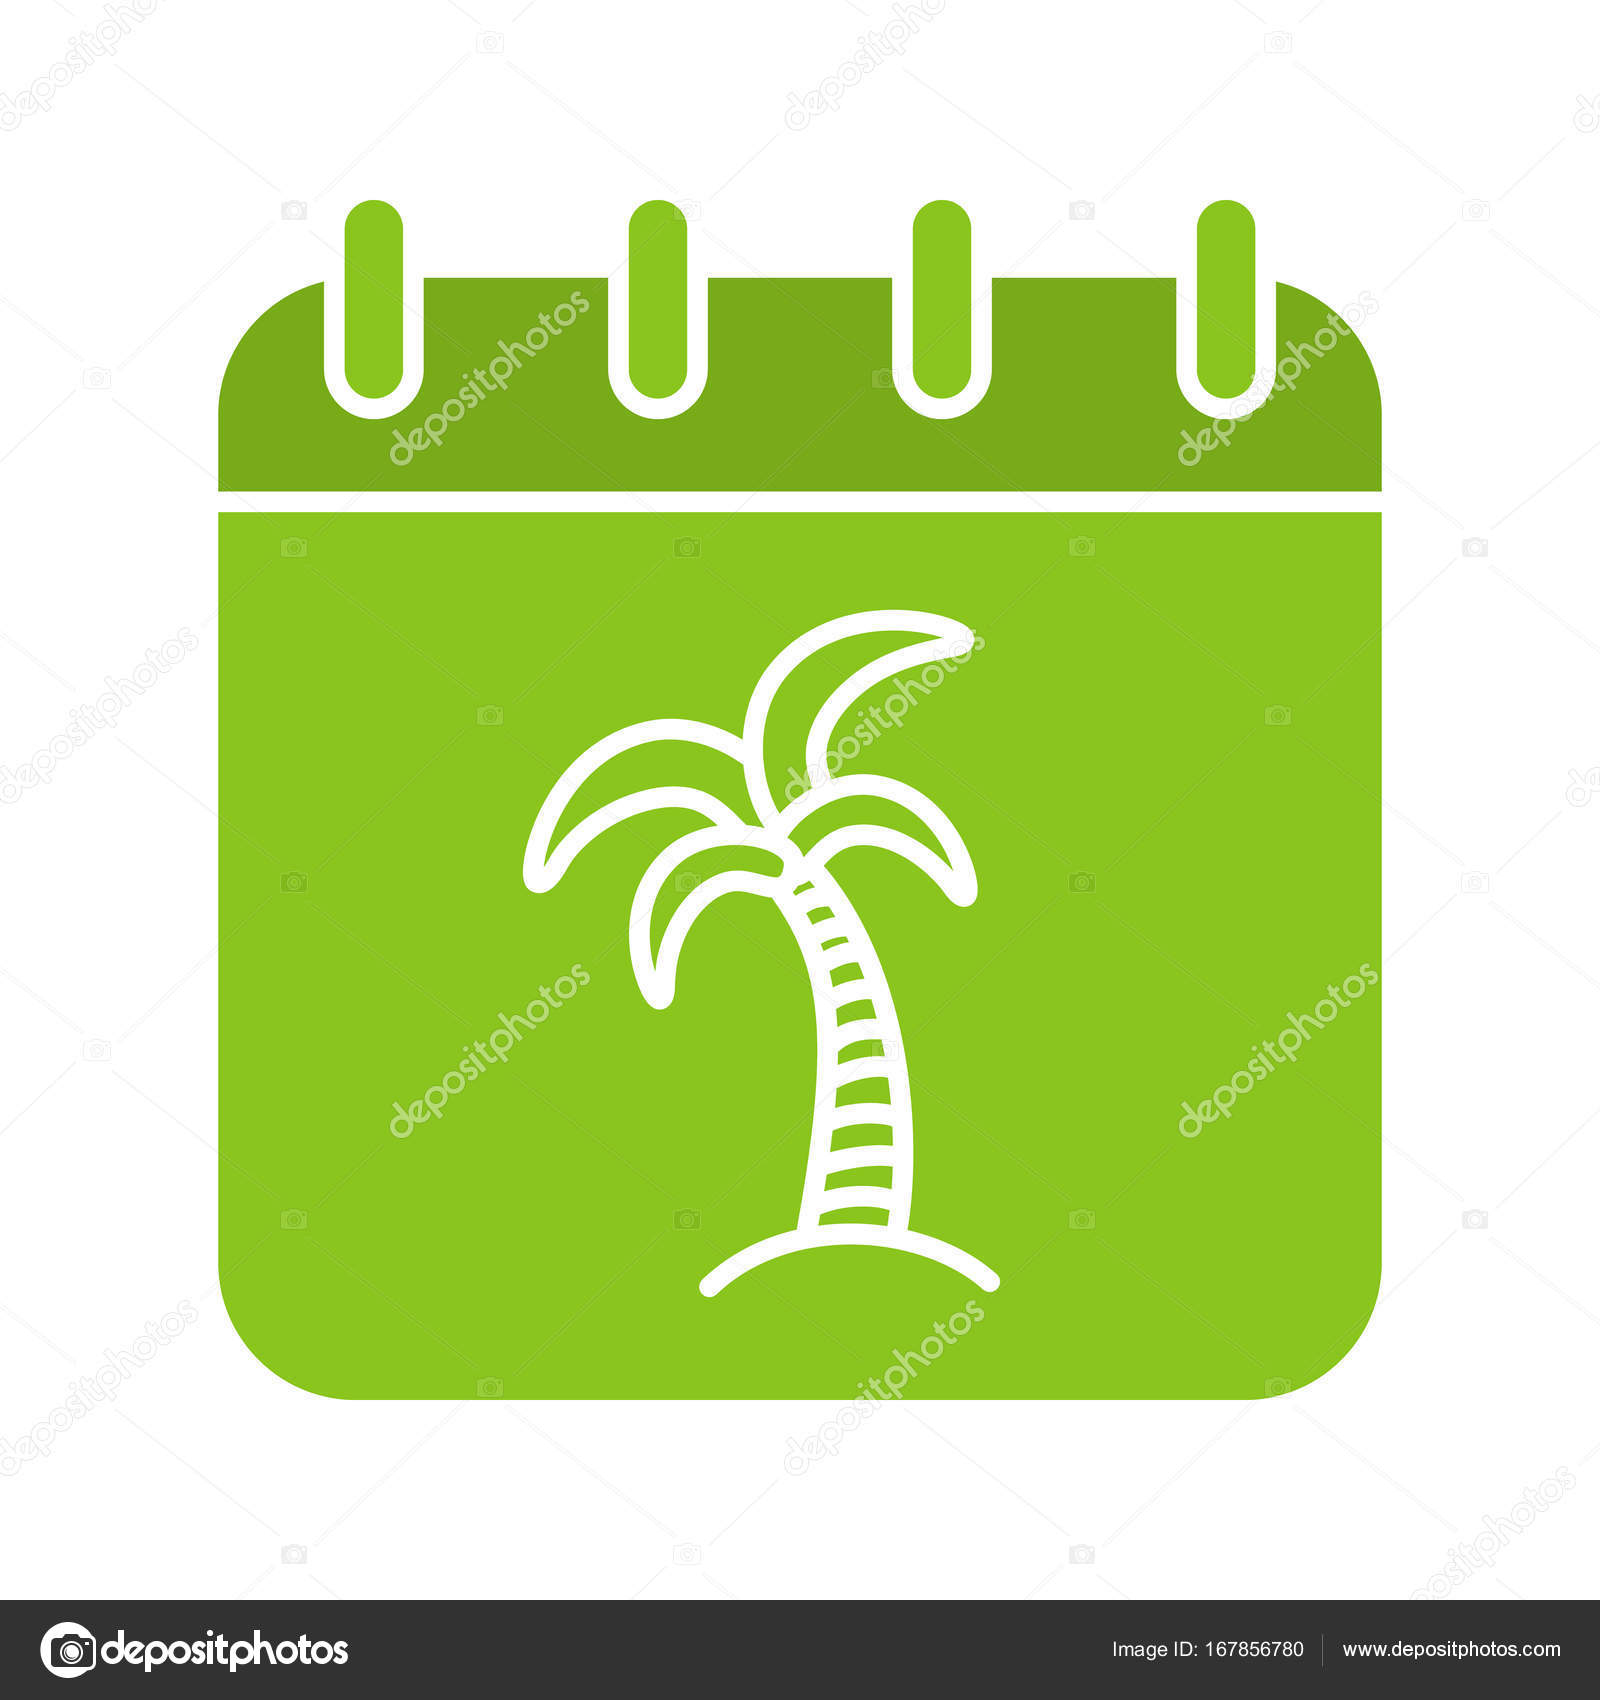 Vacations days glyph color icon — Stock Vector © bsd #167856780